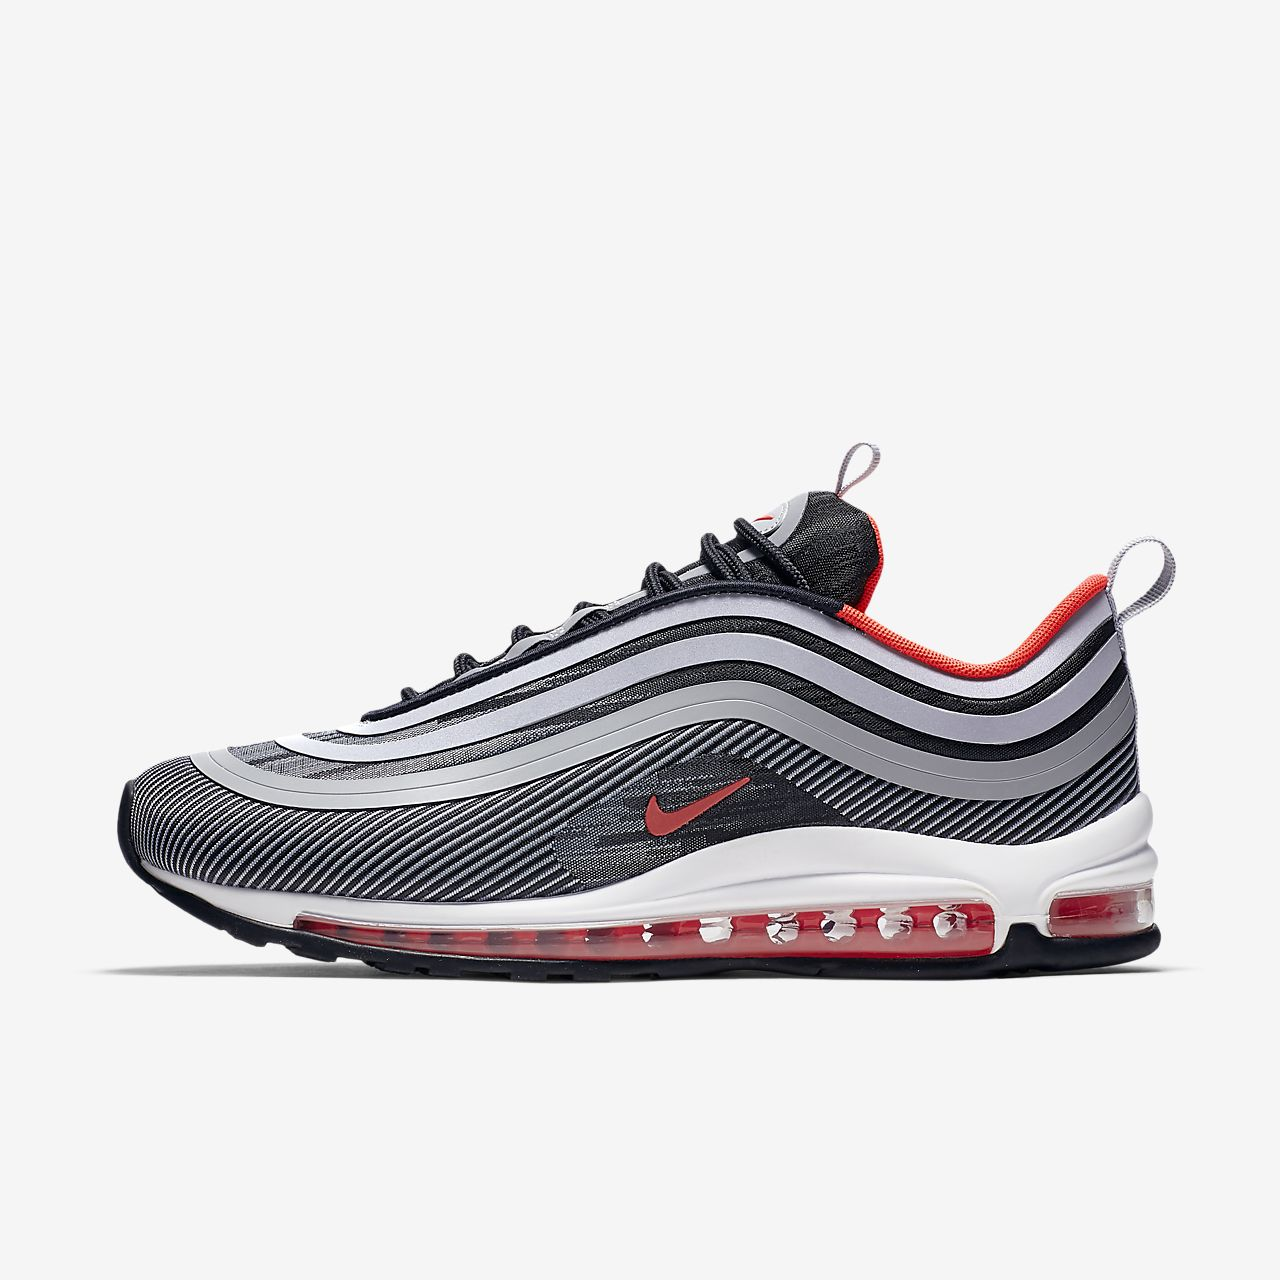 58859690c0 Nike Air Max 97 Ultra '17 Men's Shoe. Nike.com ID